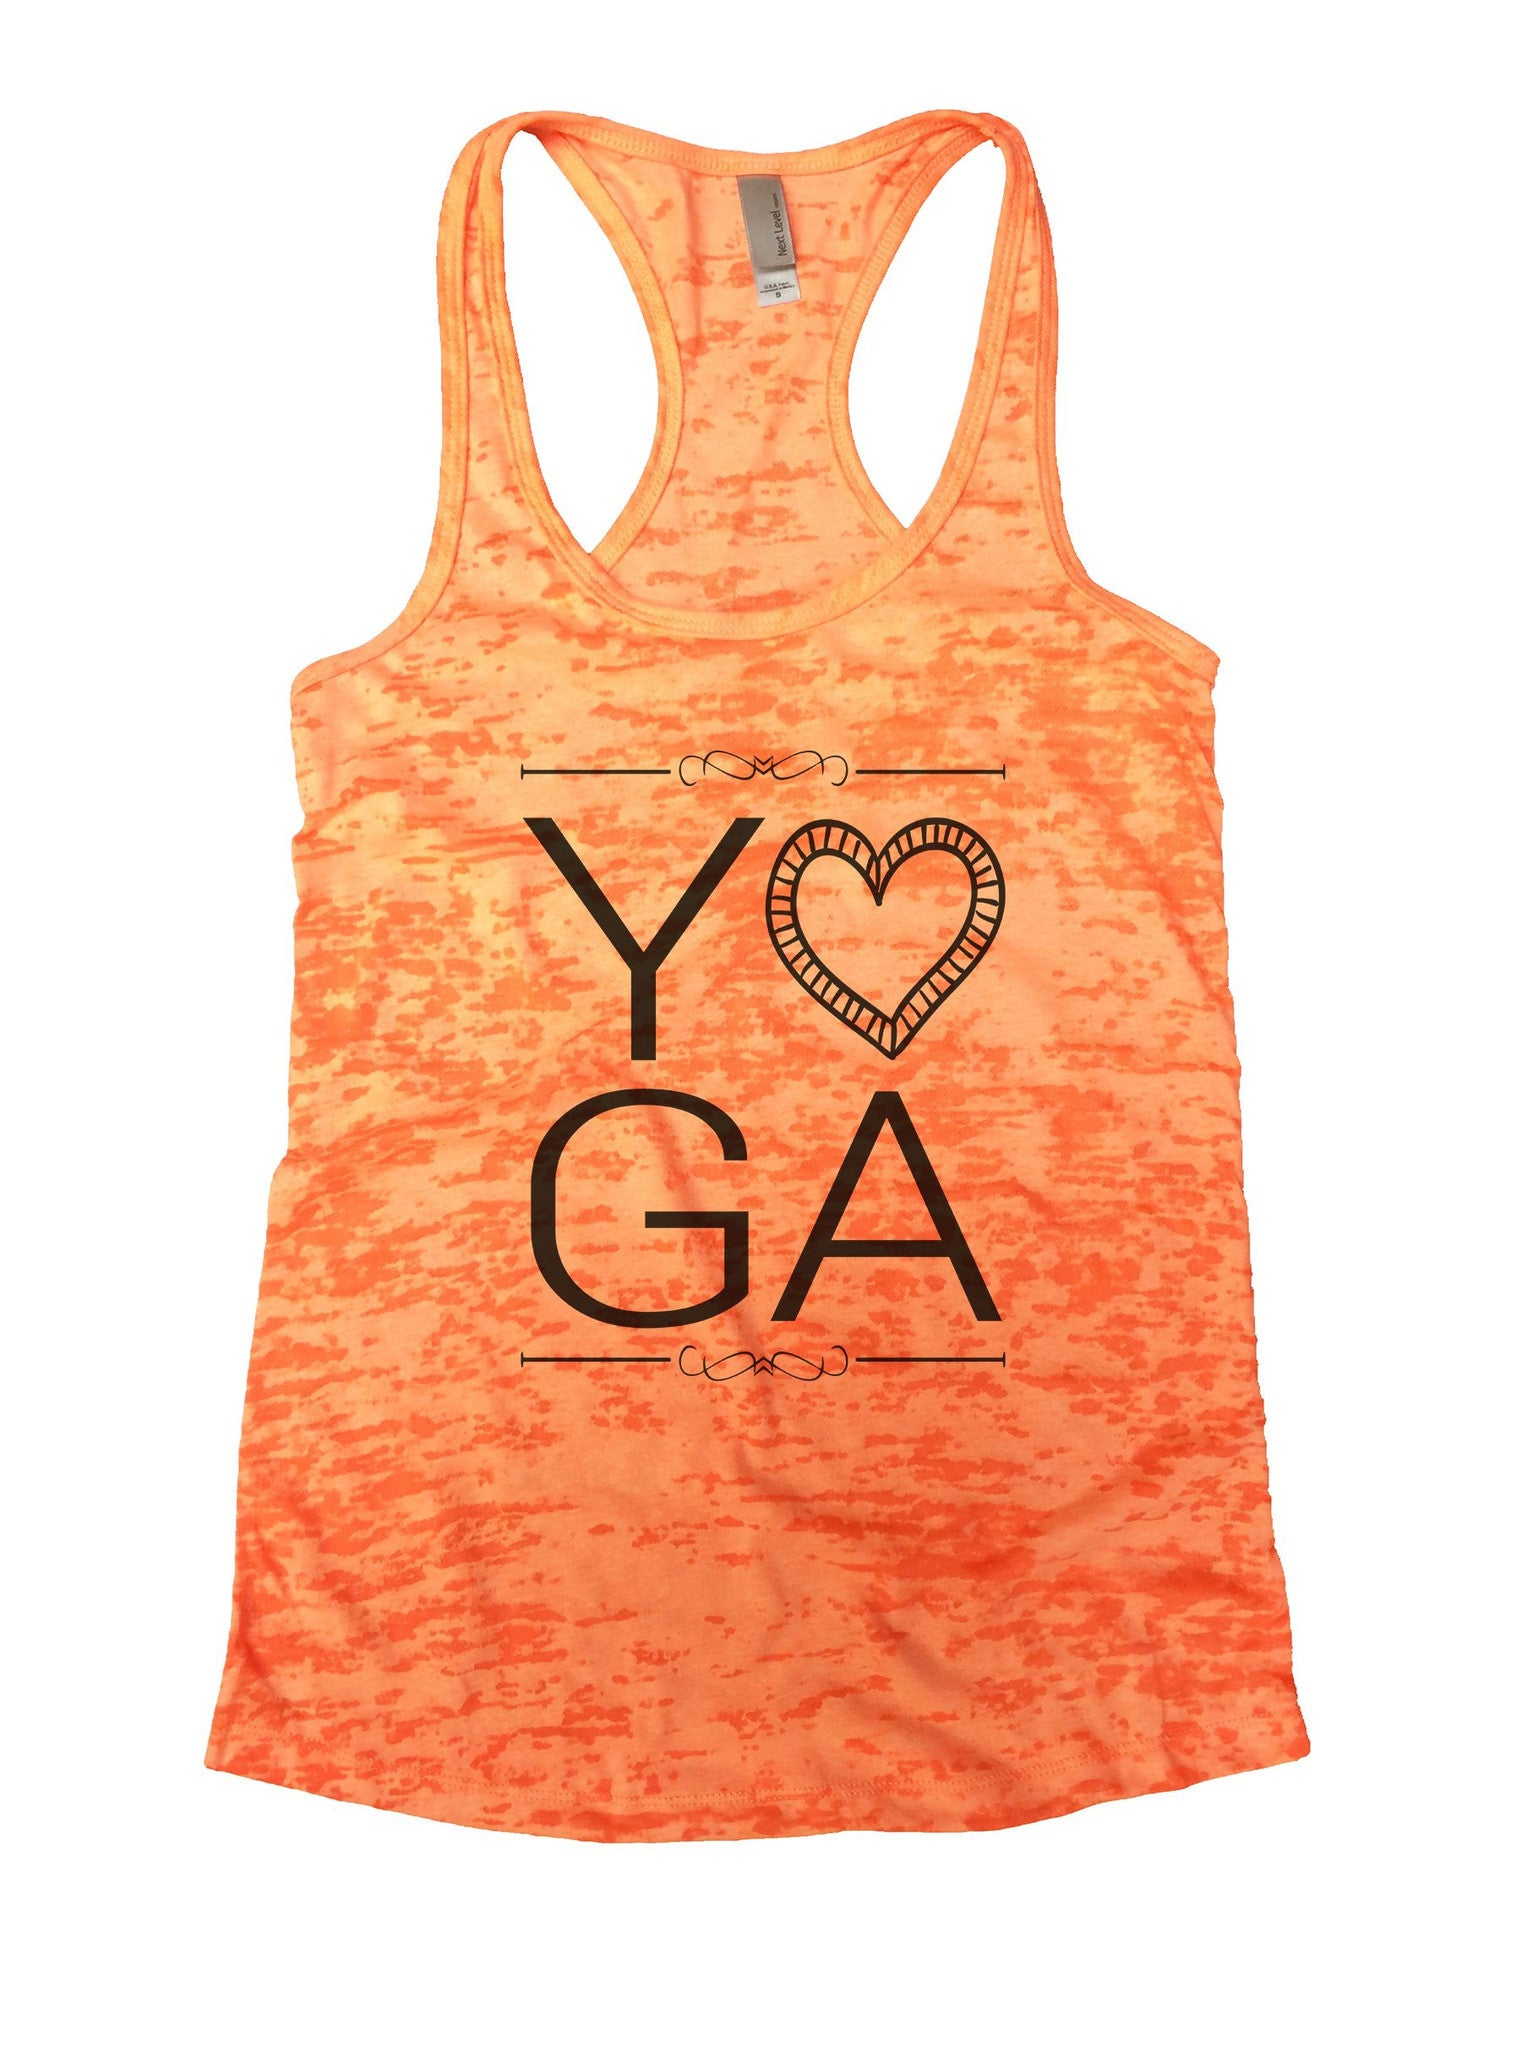 Yoga Burnout Tank Top By BurnoutTankTops.com - 838 - Funny Shirts Tank Tops Burnouts and Triblends  - 3